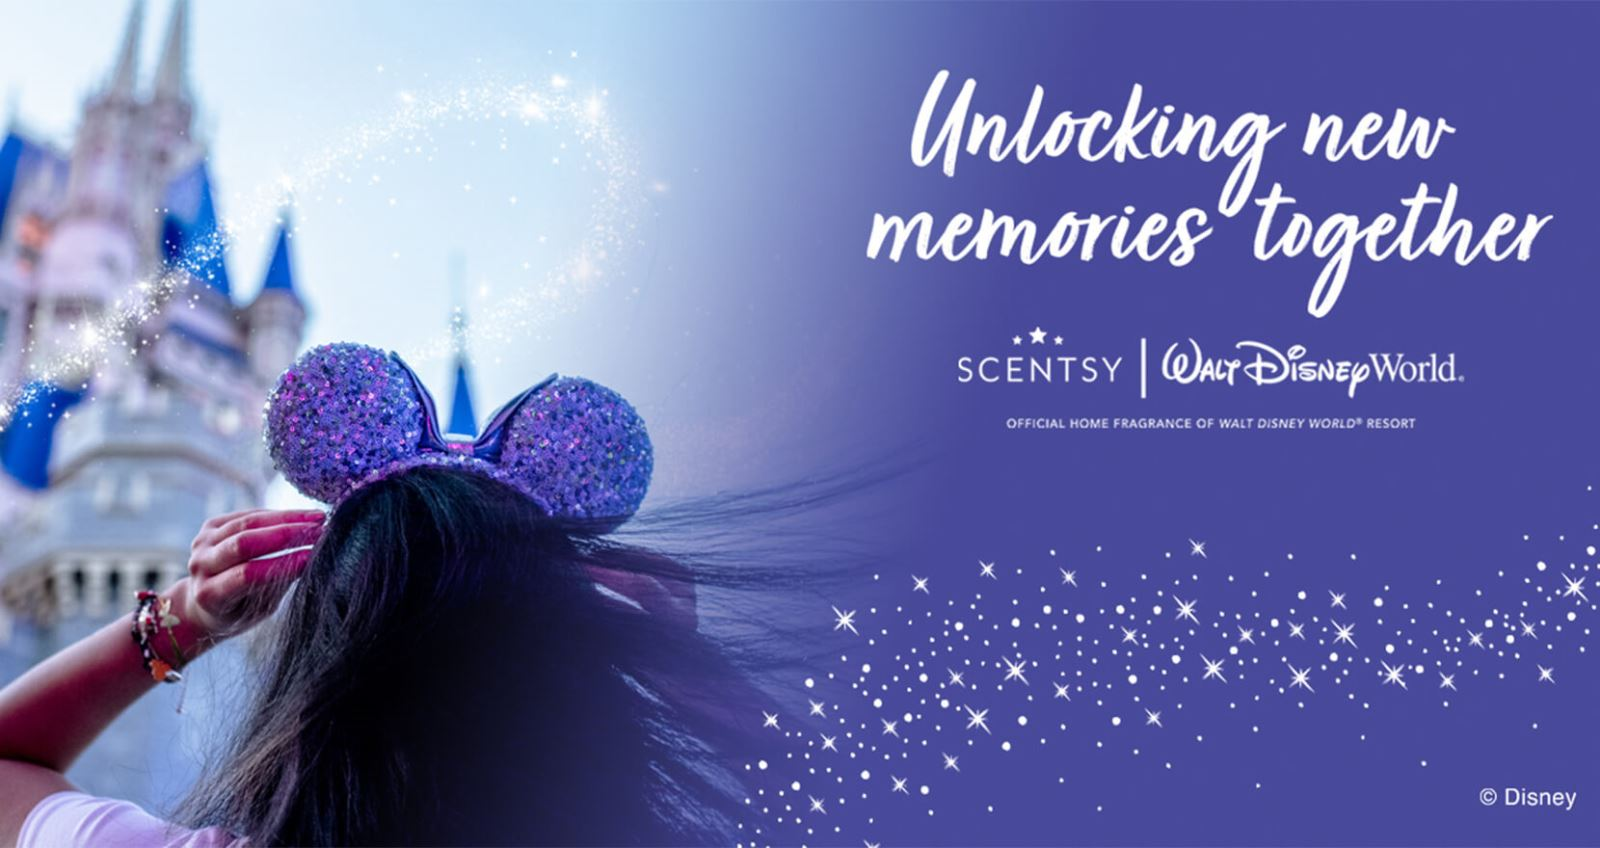 A girl with a sequined Mickey Mouse ear headband stands in front of the iconic Cinderella Castle in Walt Disney World Resort against a clear blue sky and a swirl of dazzling pixie dust. Scentsy is becoming the Official Home Fragrance of Walt Disney World Resort, 'unlocking new memories together.'